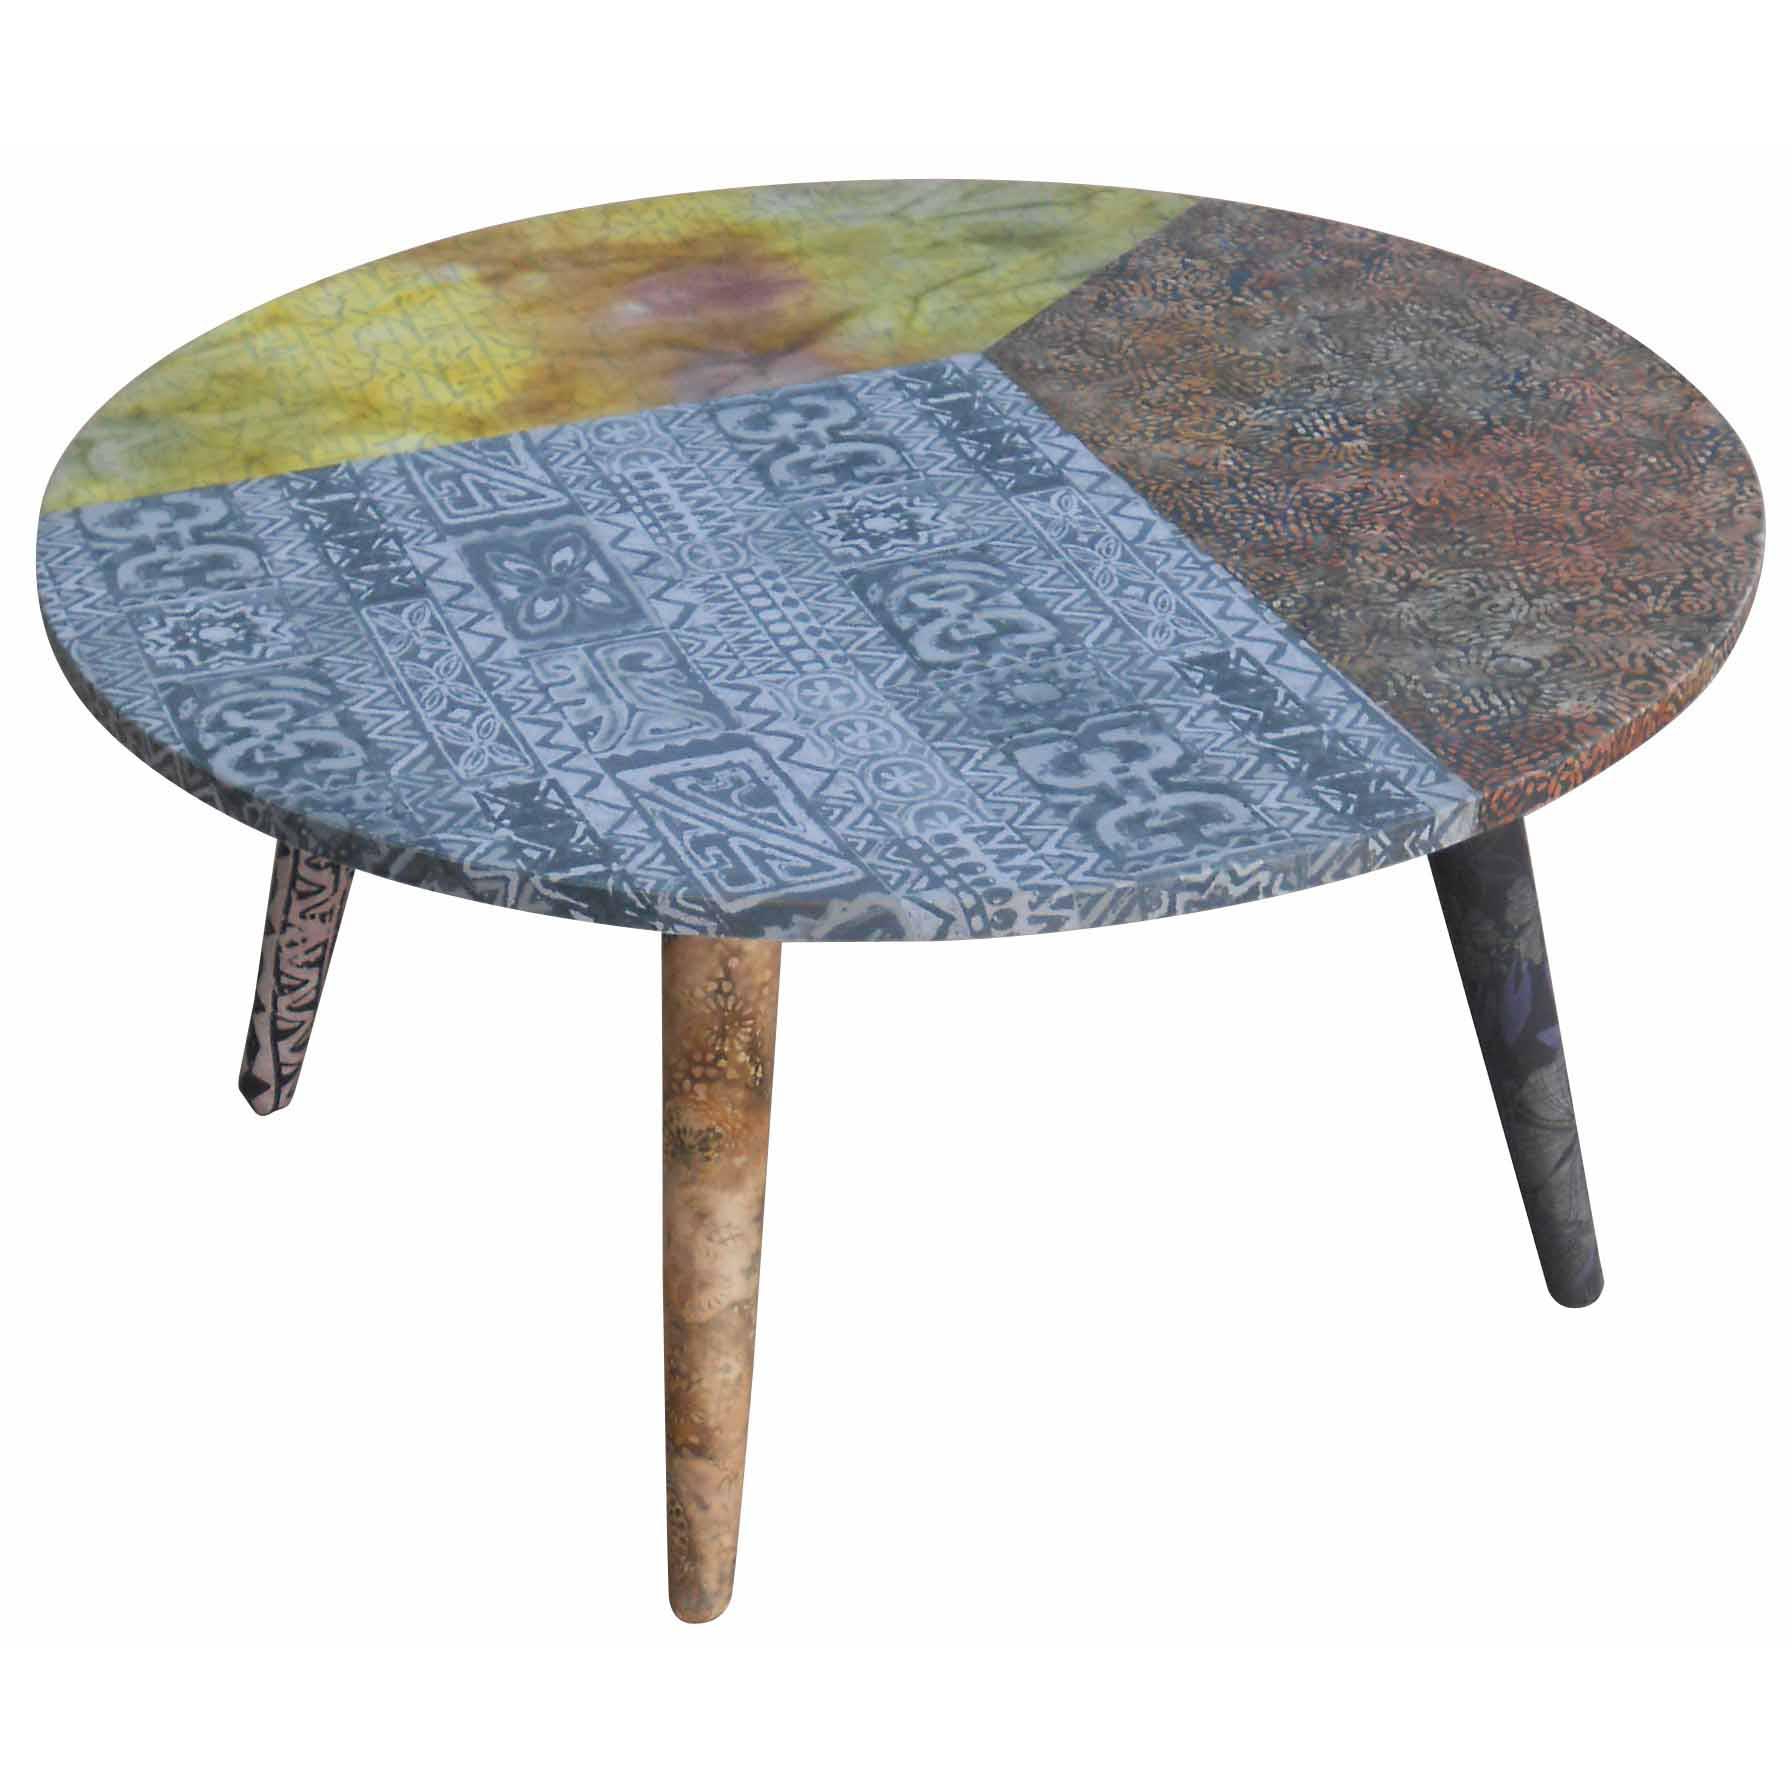 Batik Coffee Tables Inside Favorite Keen Coffee Table, Batik – Boulevard Urban Living (View 8 of 20)